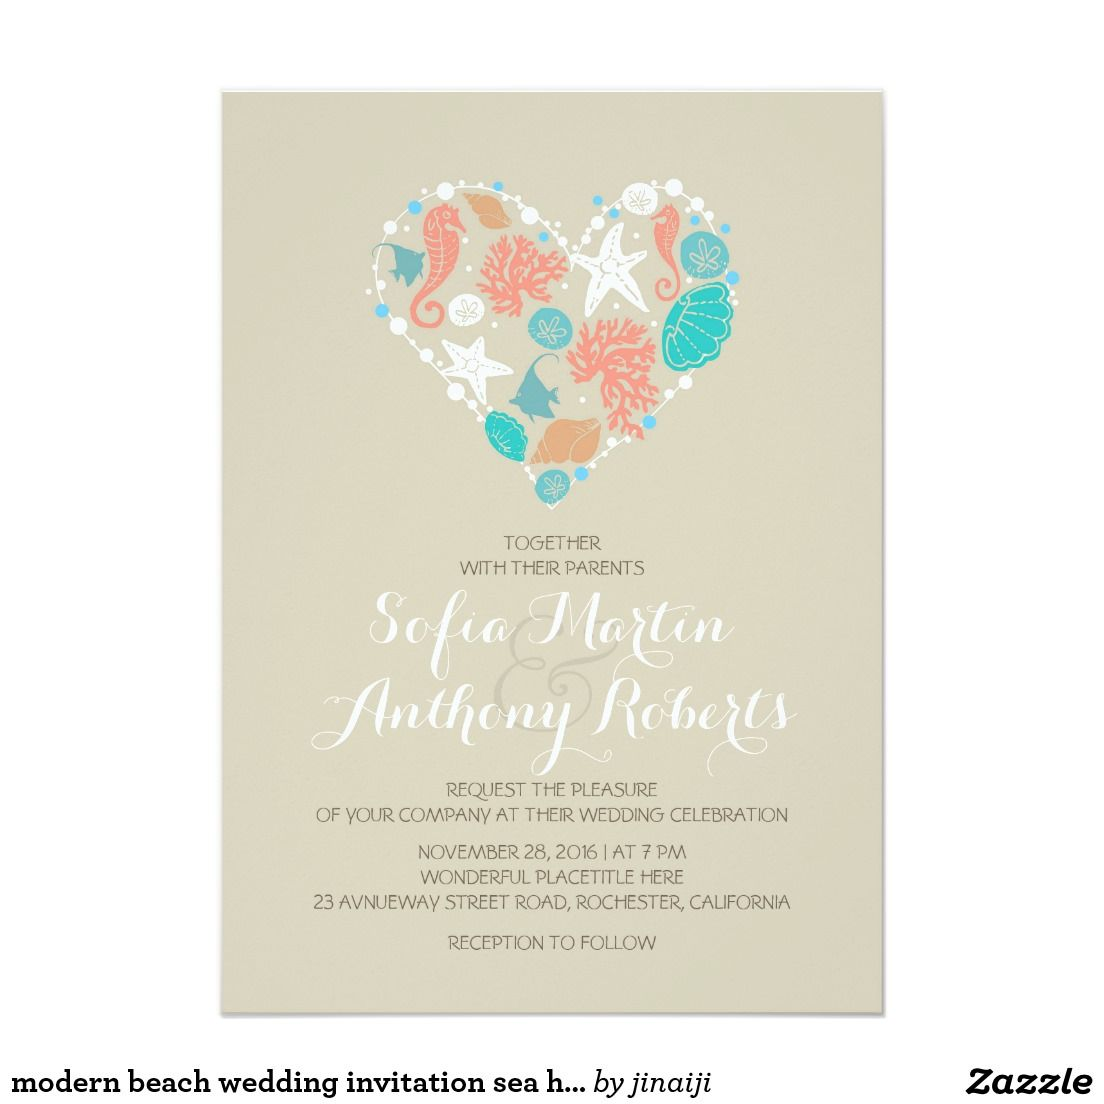 Modern beach wedding invitation sea heart | Beach wedding ...